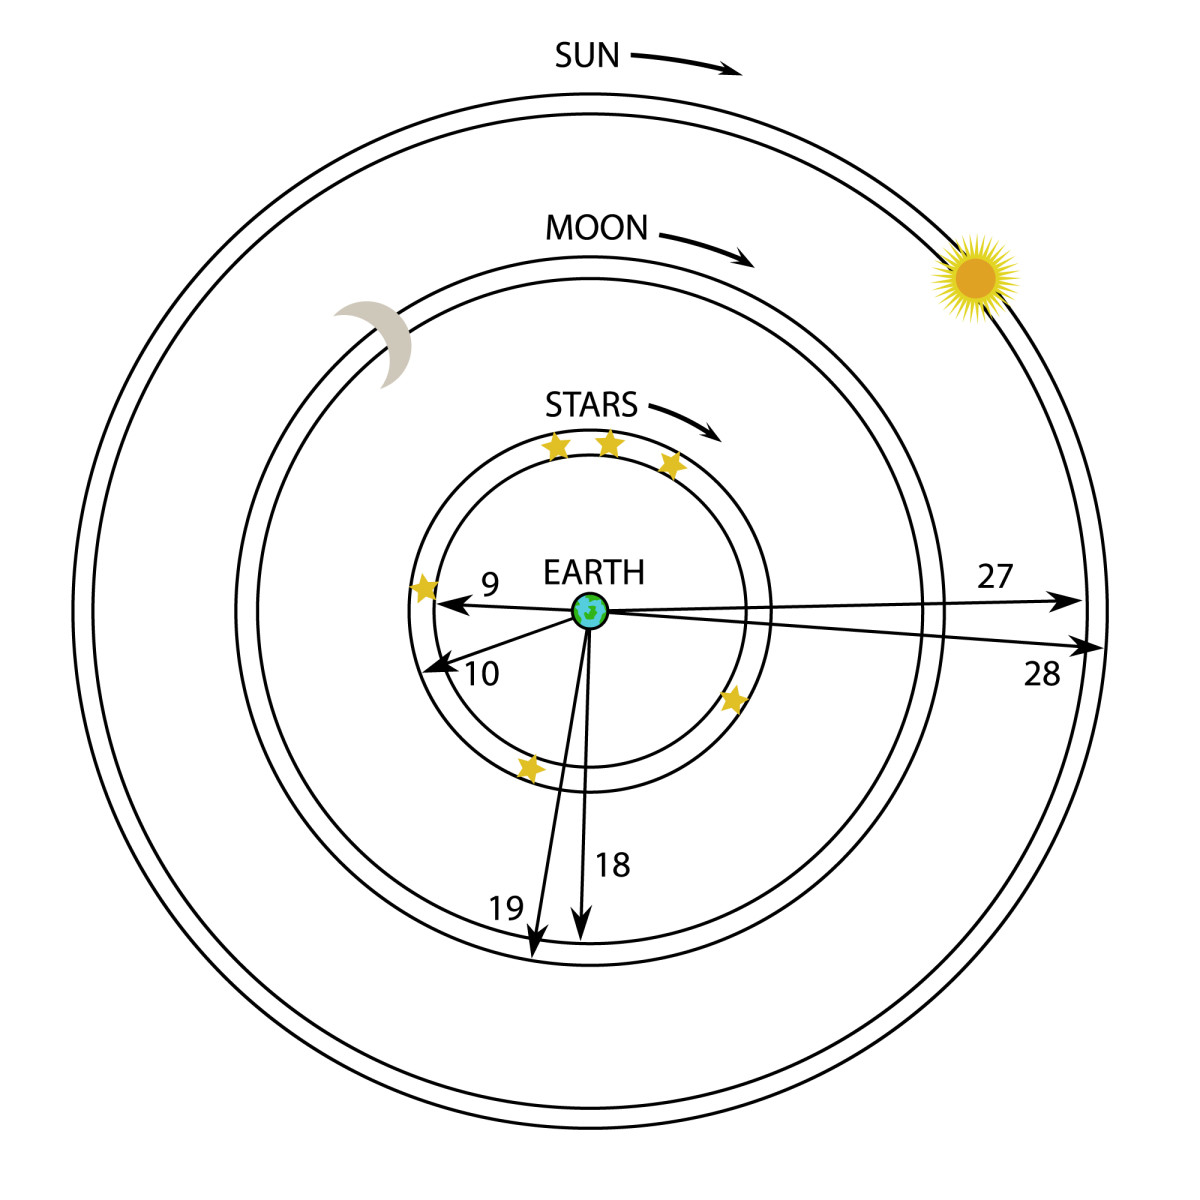 Anaximander's view of the relationships and size of the heavenly bodies relative to the earth.